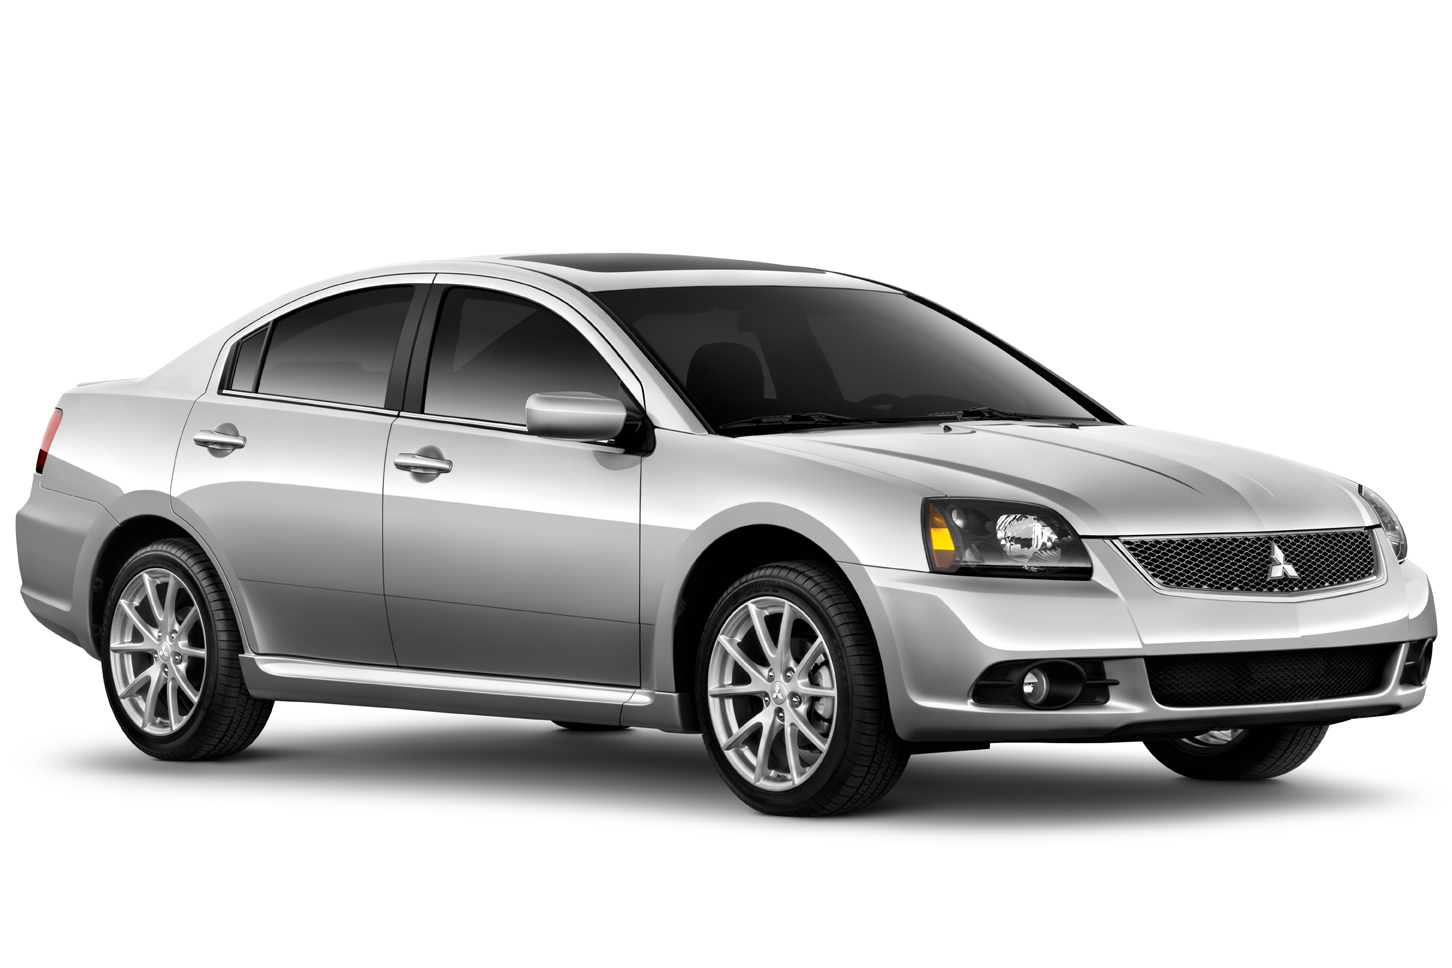 2012 Mitsubishi Galant Review, Ratings, Specs, Prices, and ...